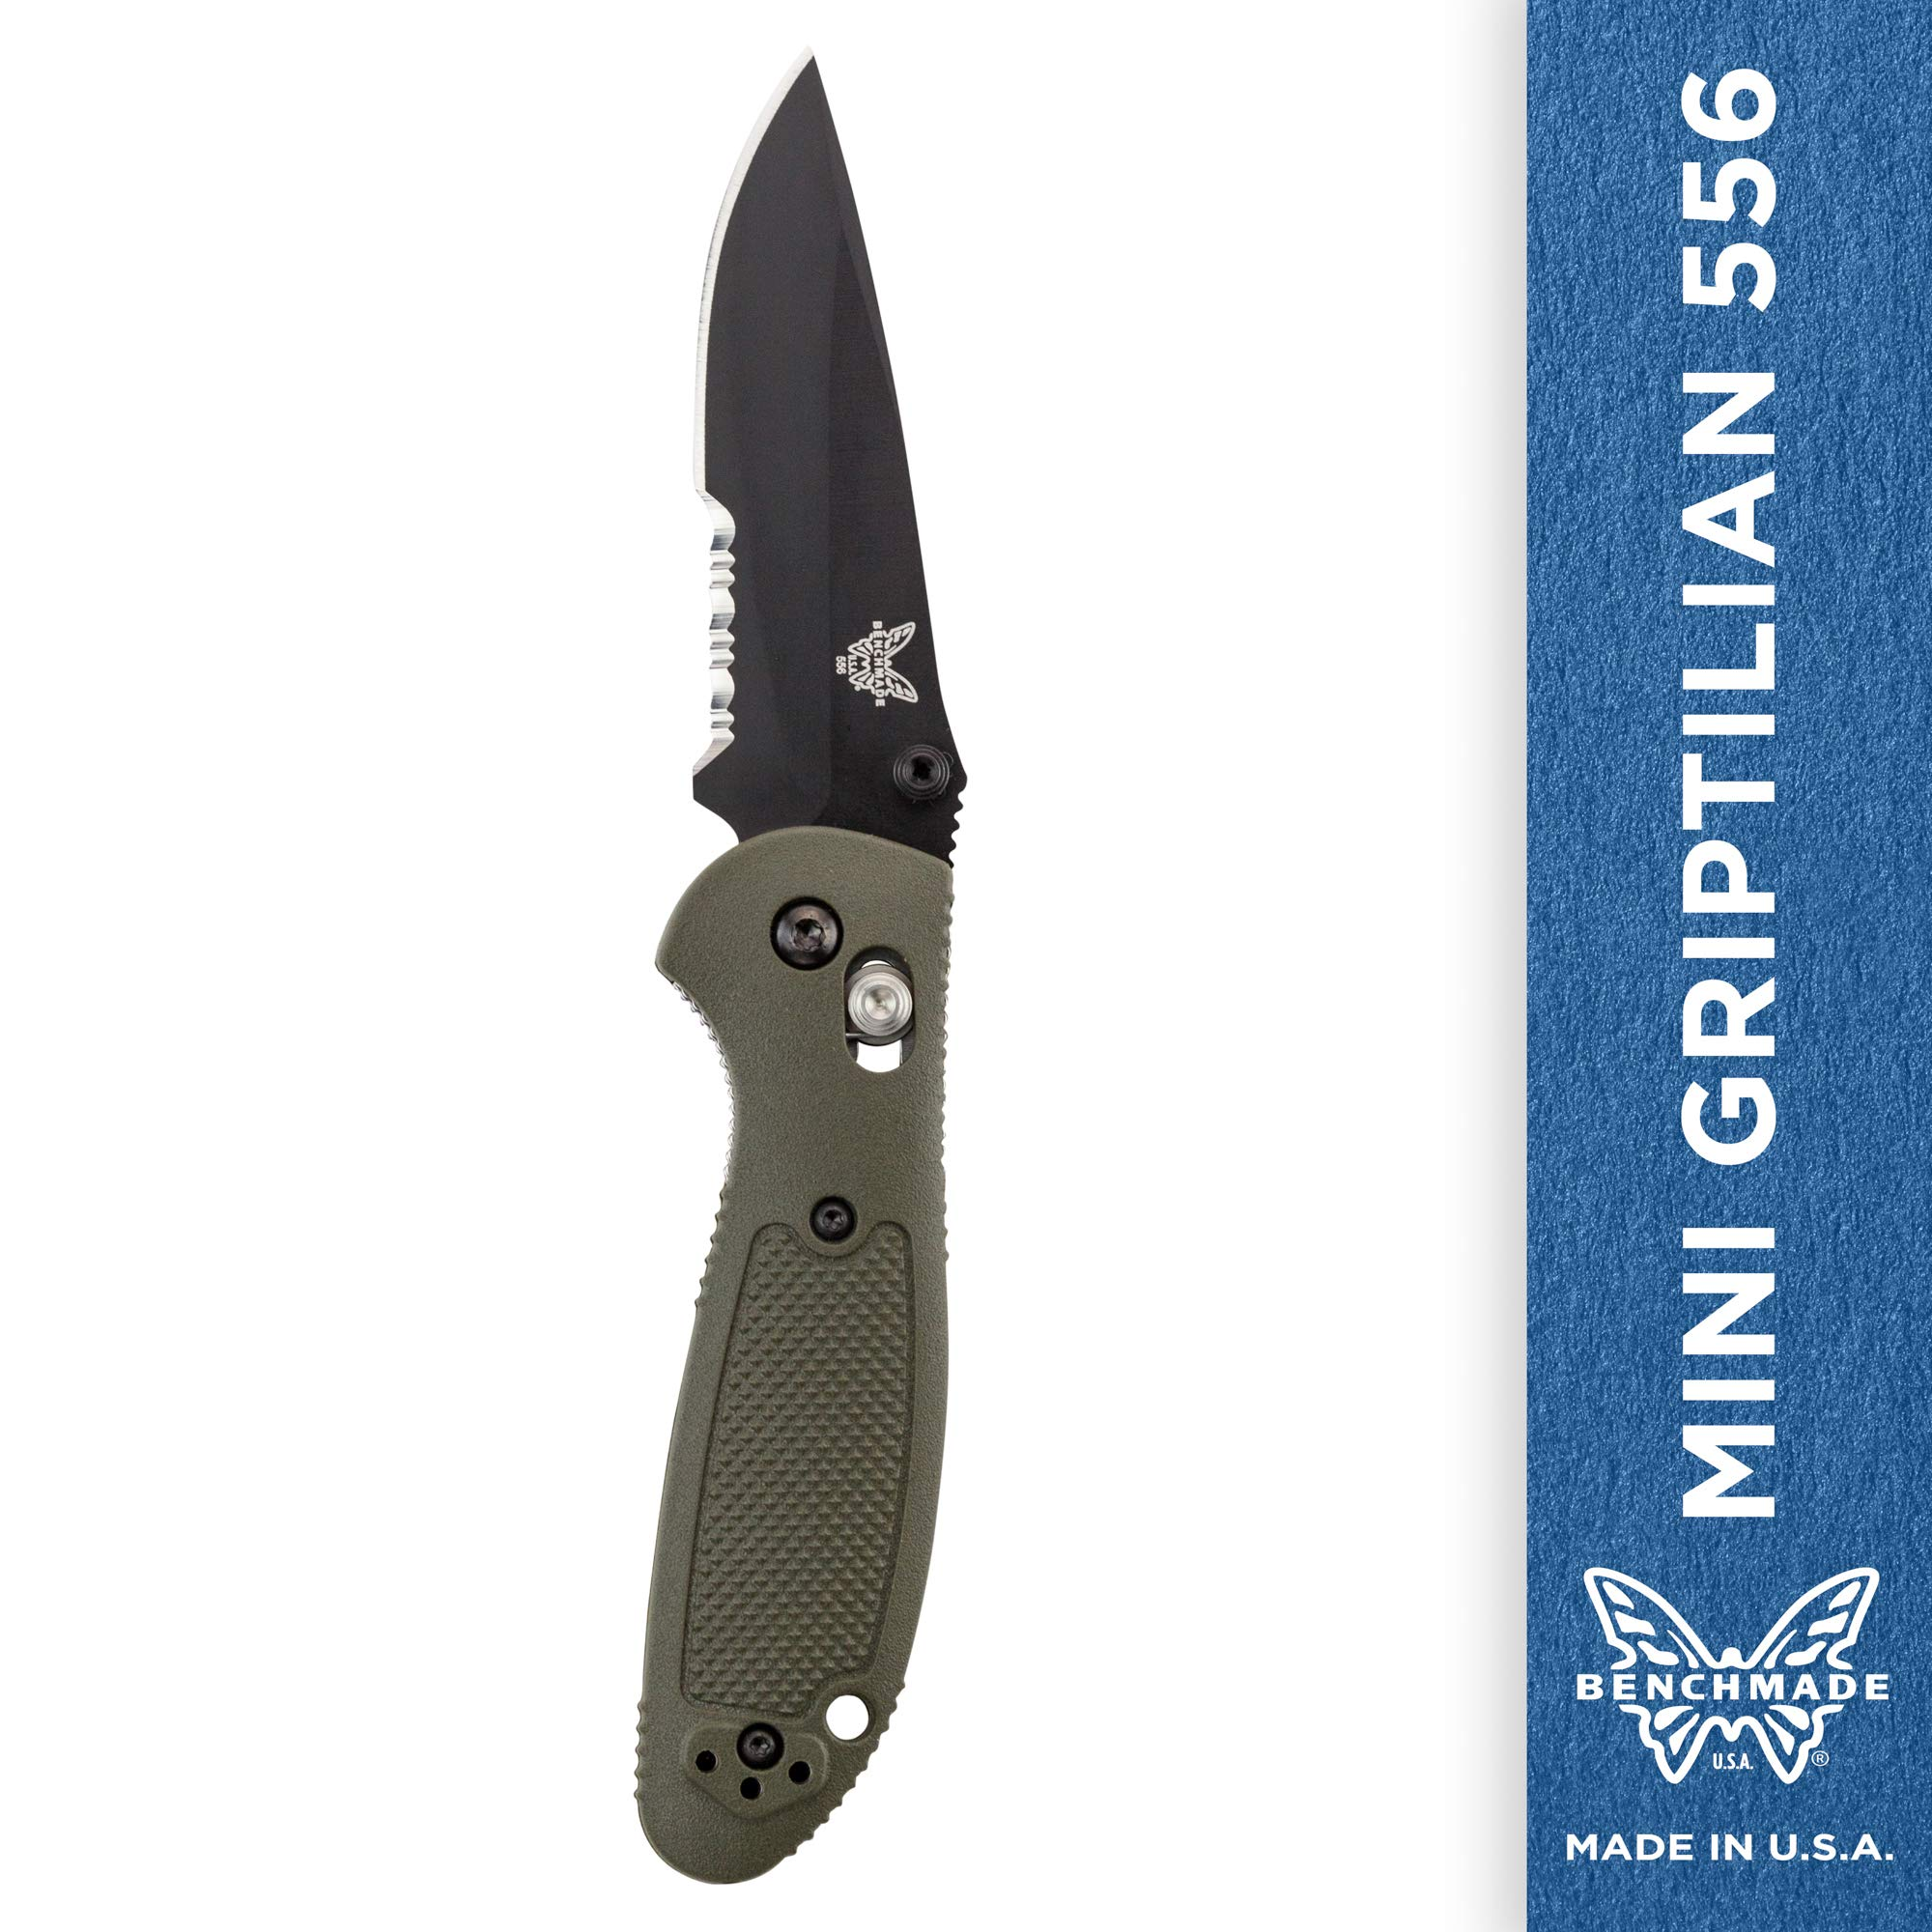 Benchmade - Mini Griptilian 556 EDC Manual Open Folding Knife Made in USA with CPM-S30V Steel, Drop-Point Blade, Serrated Edge, Coated Finish, Olive Handle by Benchmade